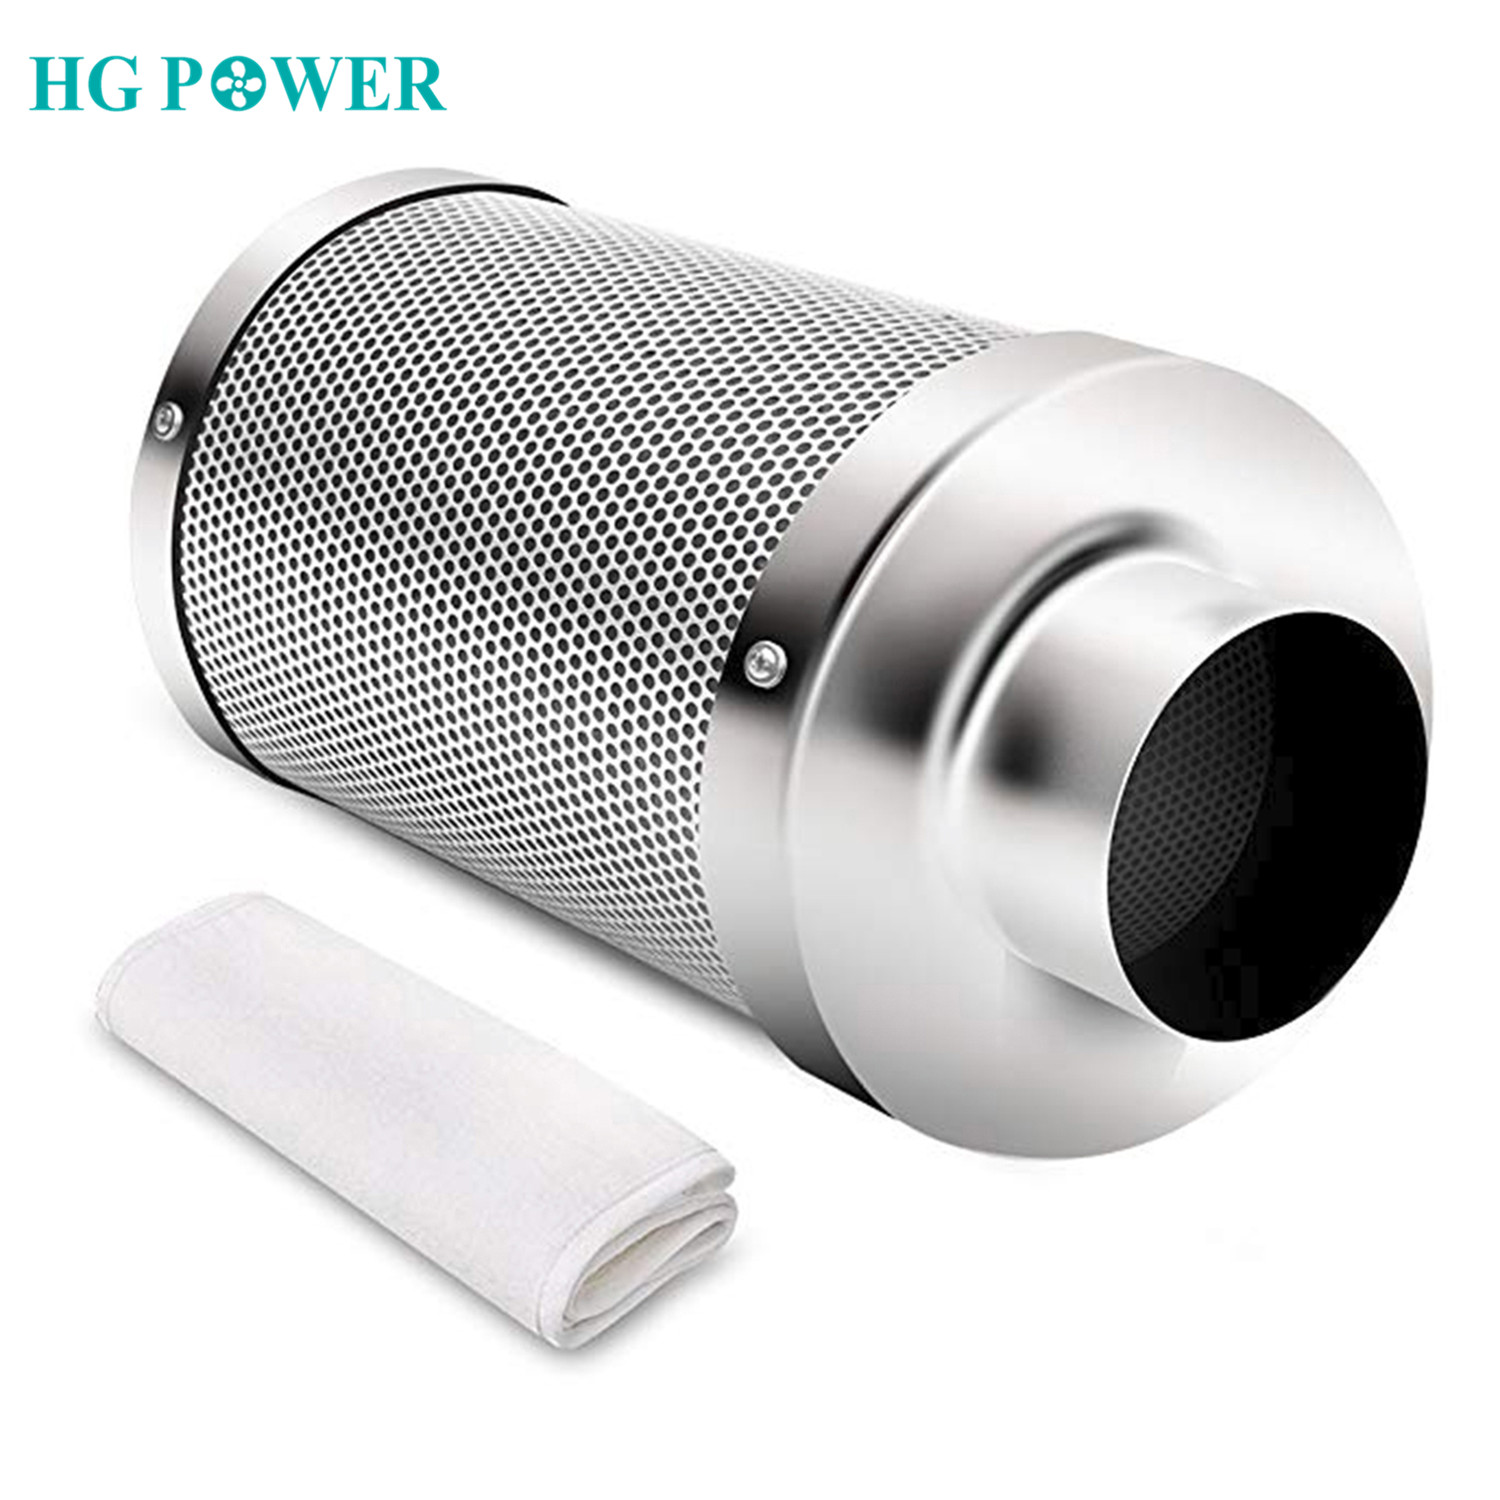 4 6 Carbon Filter Air Purifier for Inline Fan Hydroponics Greenhouse Indoor Gardening Grow Tent Ventilation